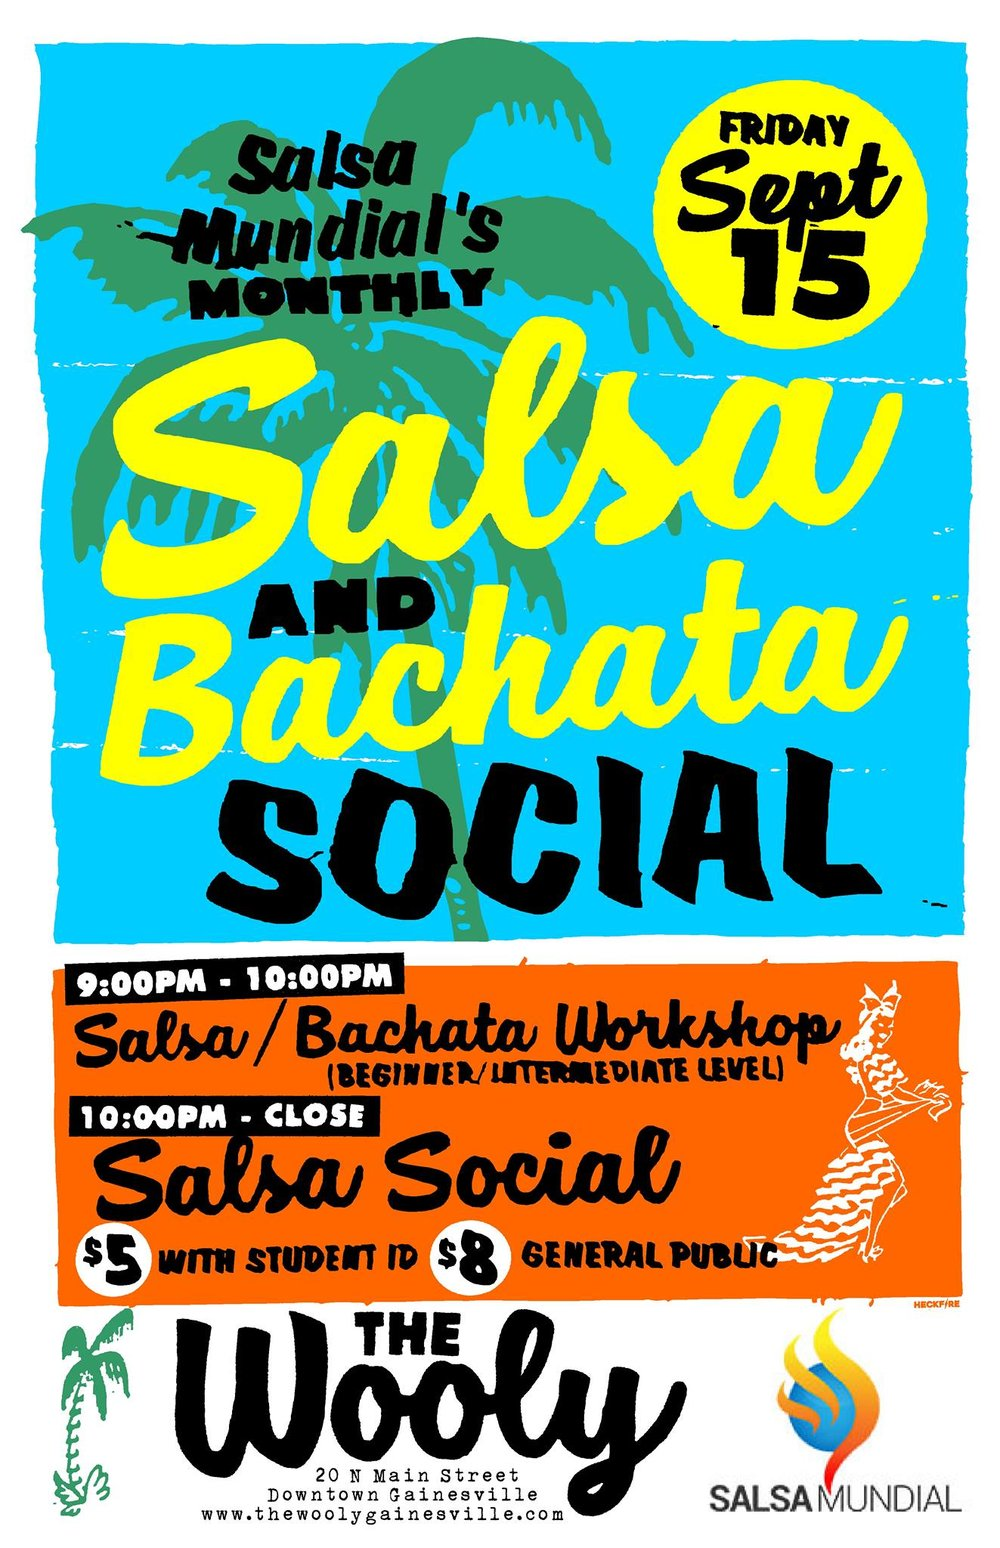 Friday, Sept. 15th Salsa Mundial's Monthly Salsa and Bachata Social heads to The Wooly! Open to the public Salsa/bachata workshop (beginner/intermediate level) from 9-10pm Salsa social 10pm-close $5 (with student ID) / $8 (general public) 18+